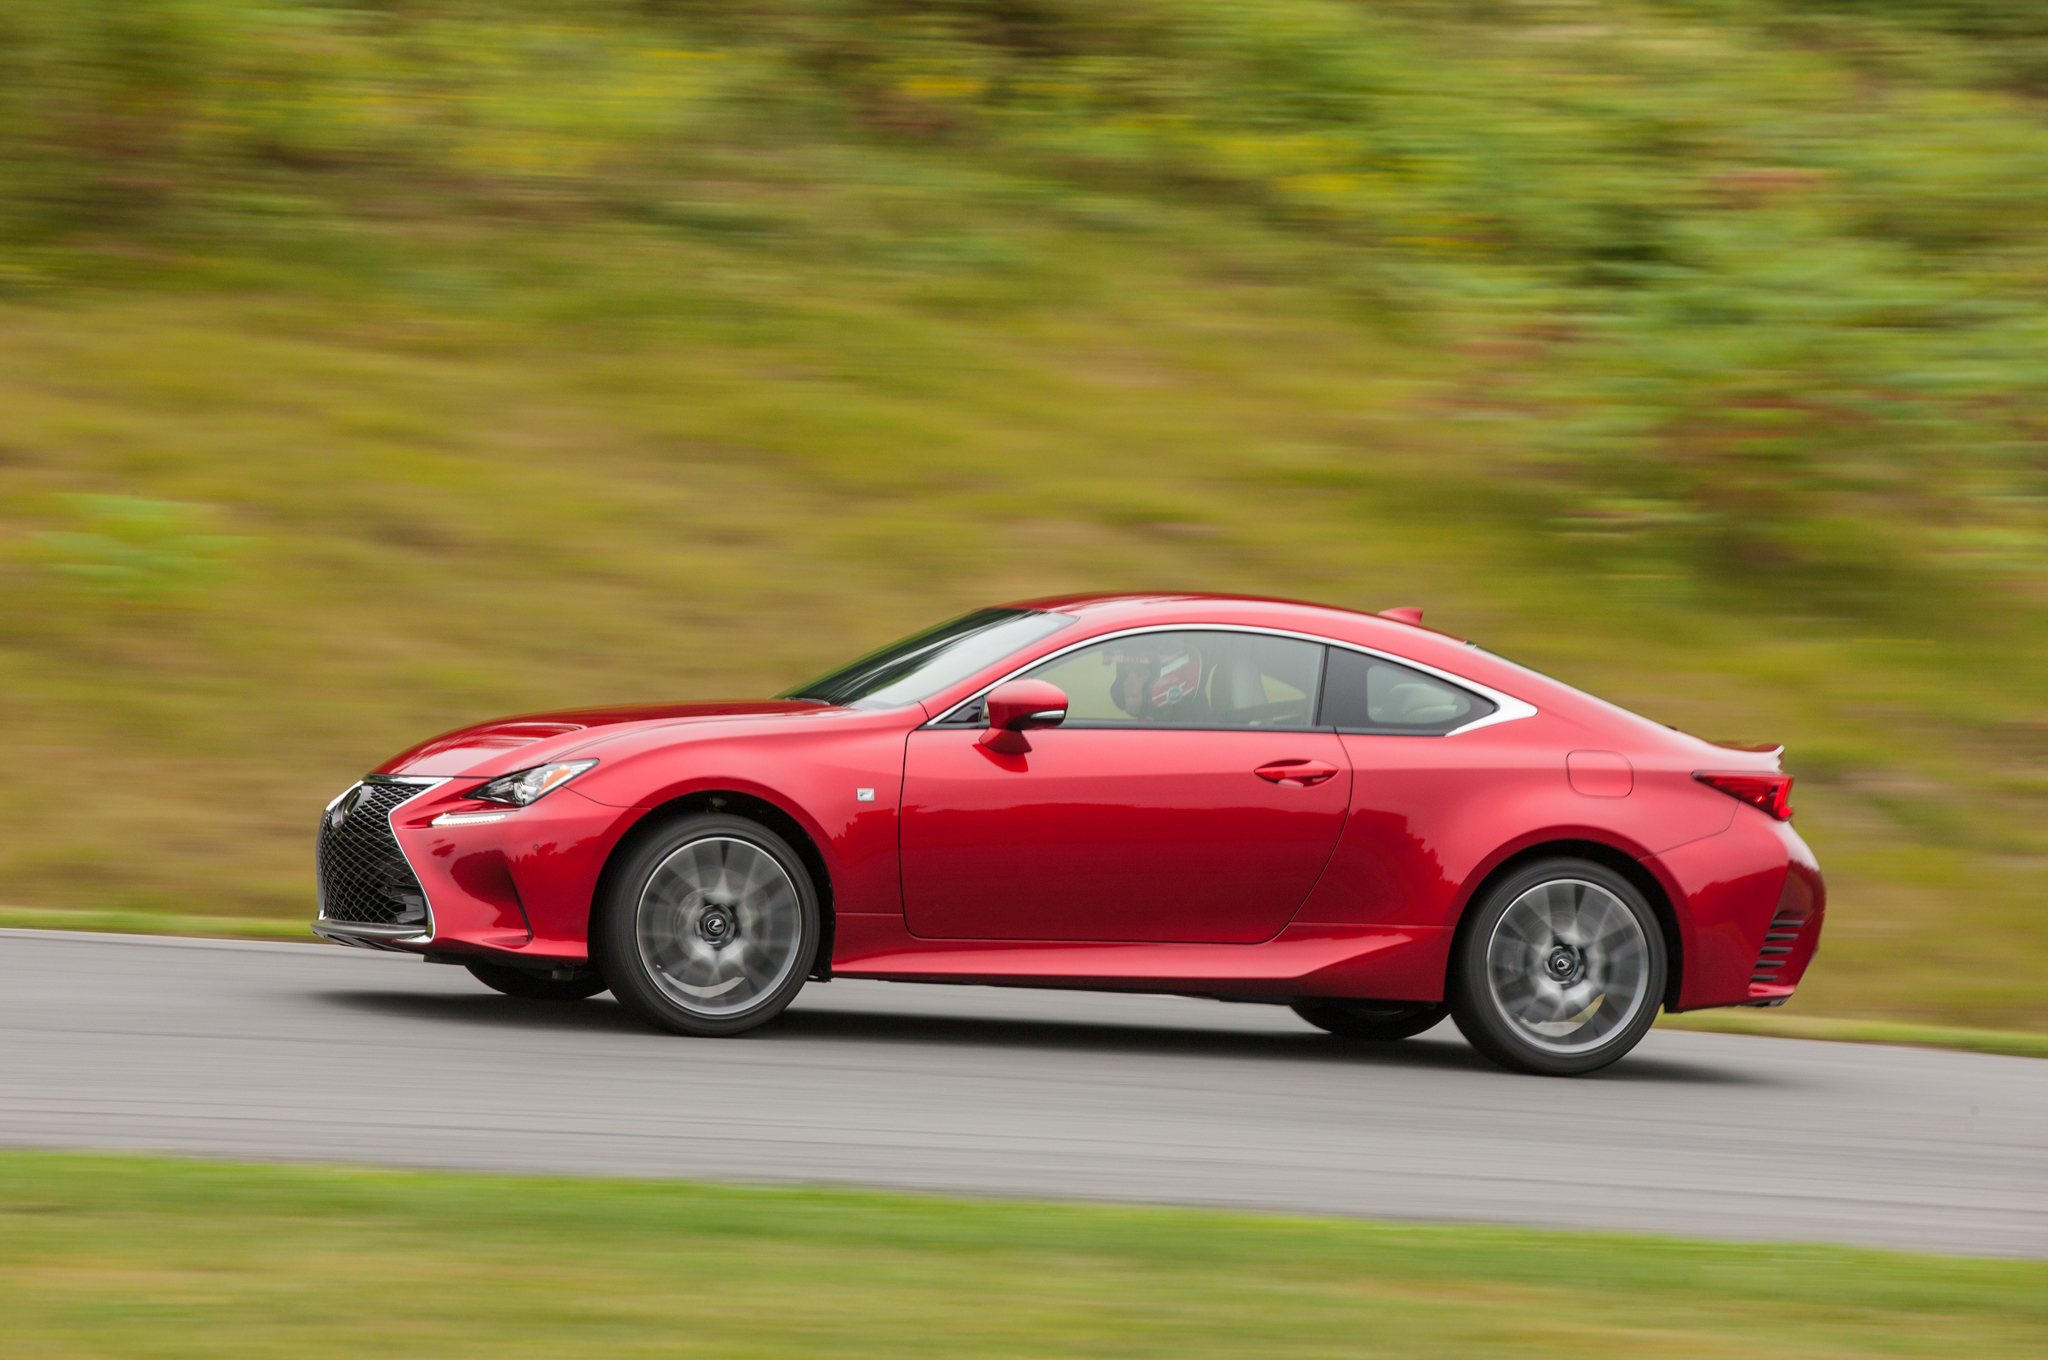 https://enthusiastnetwork.s3.amazonaws.com/uploads/sites/5/2015/08/2015-Lexus-RC-350-F-Sport-side-in-motion.jpg?impolicy=entryimage